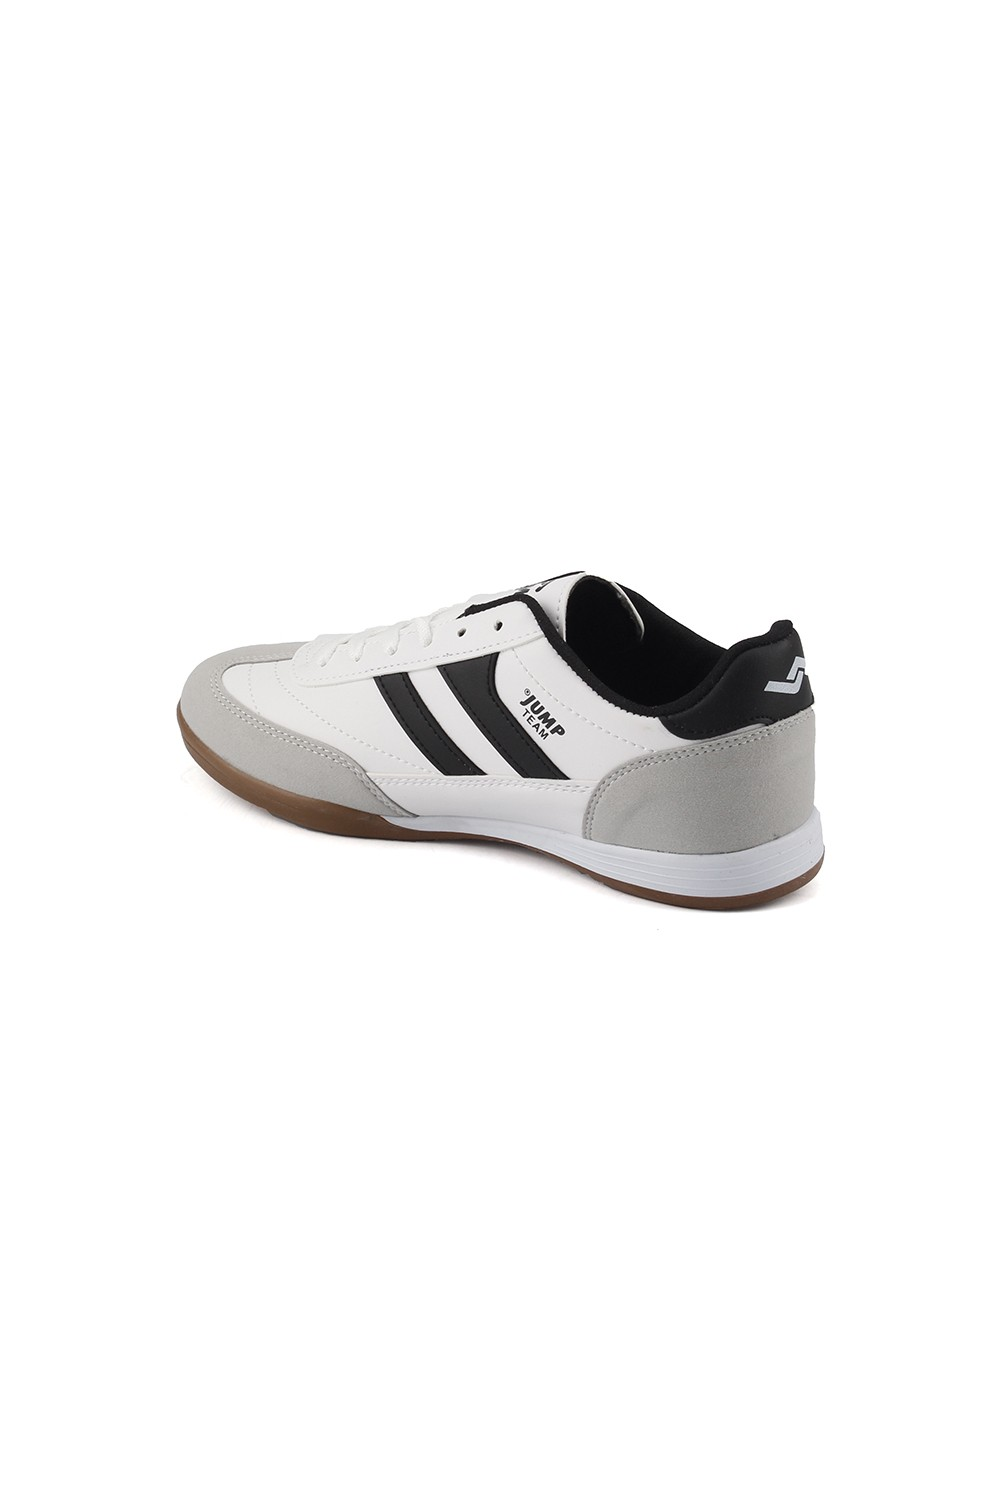 Jump Women's Sport Shoes 18089-B